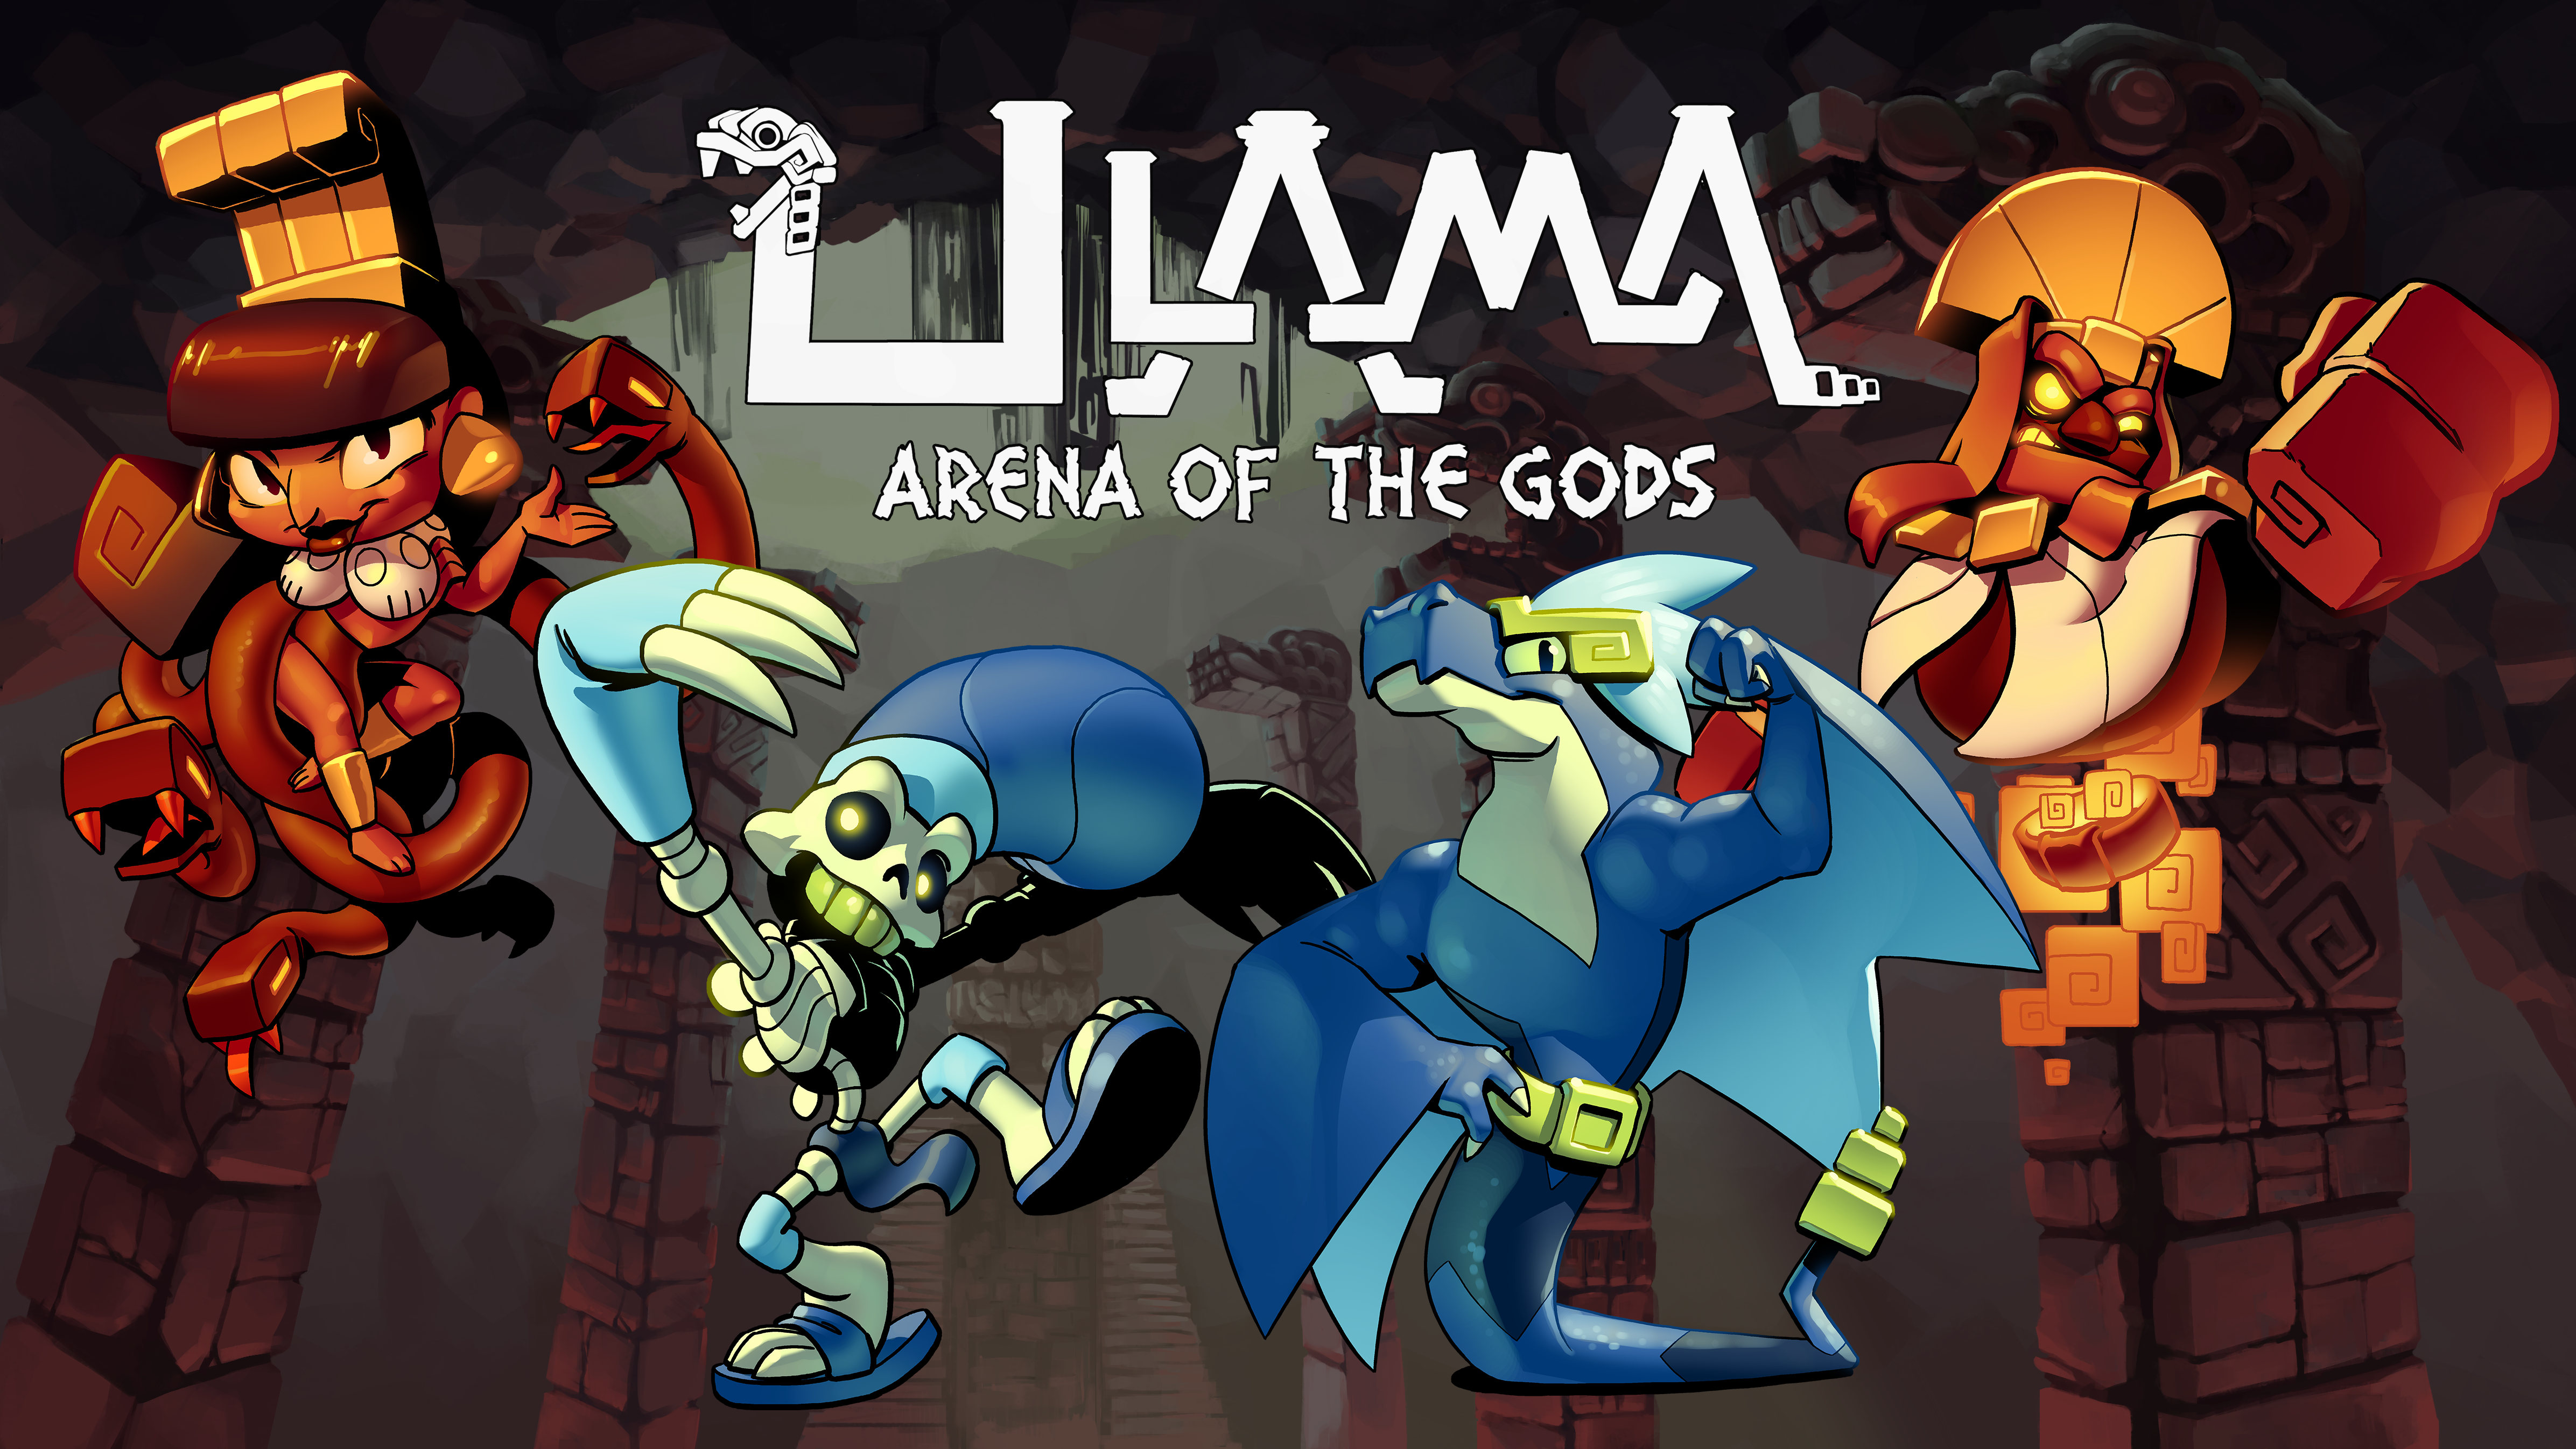 Ulama: Arena of the Gods